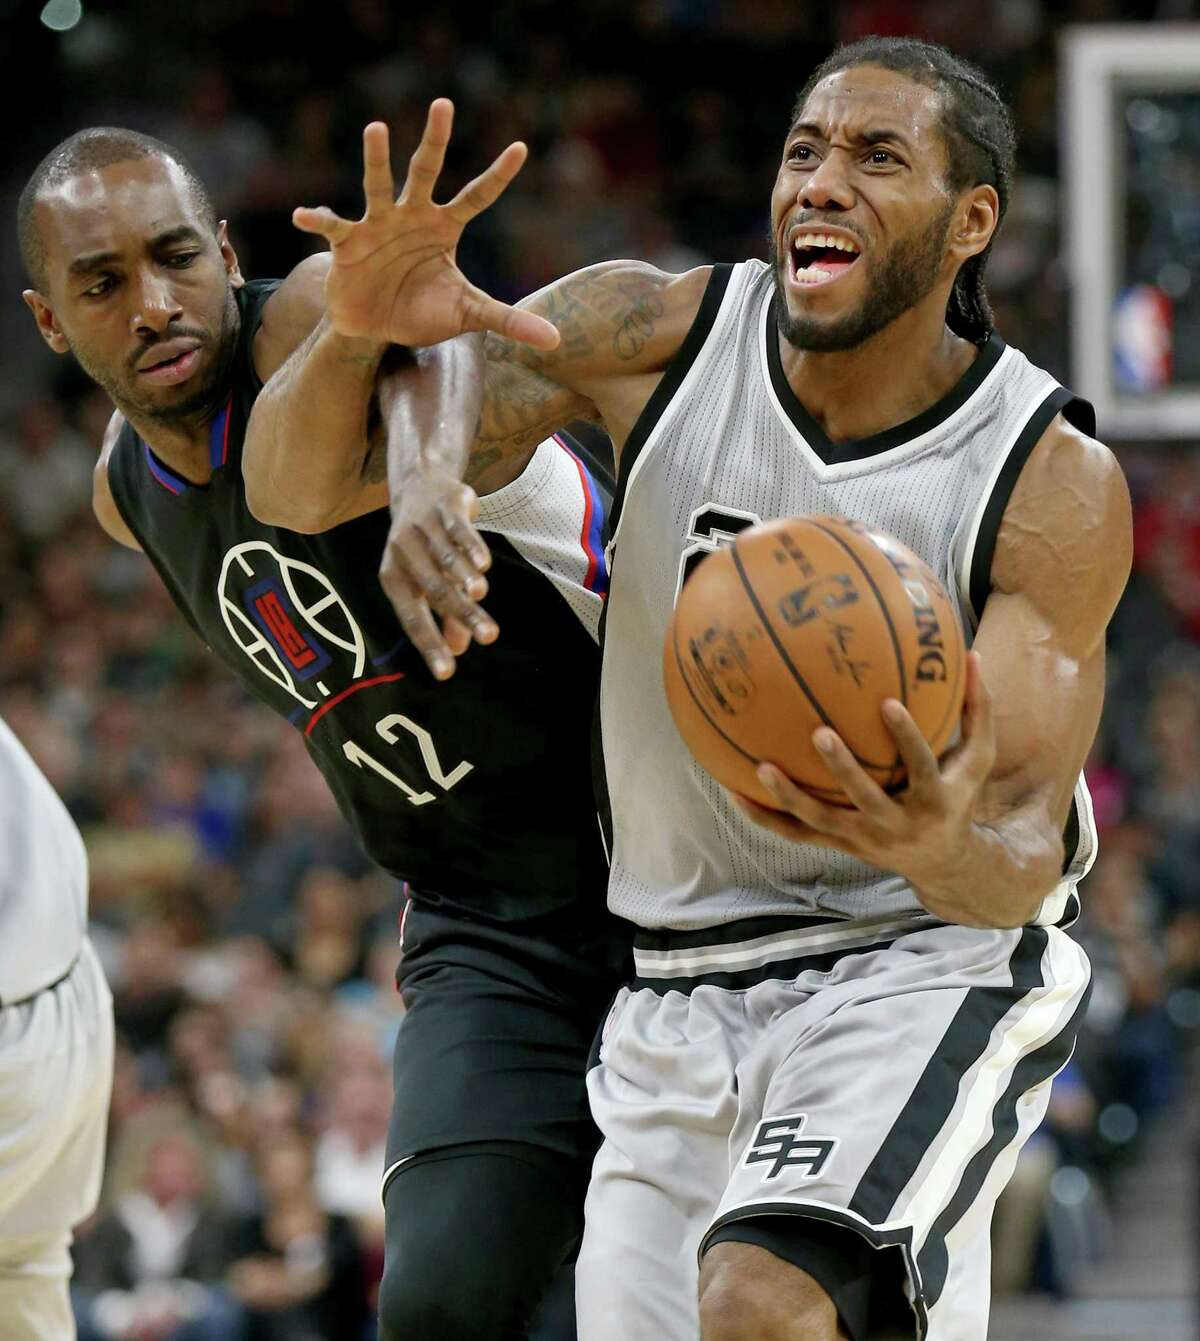 San Antonio Spurs' Kawhi Leonard is fouled by Los Angeles Clippers' Luc Richard Mbah a Moute during first half action Saturday Nov. 5, 2016 at the AT&T Center.